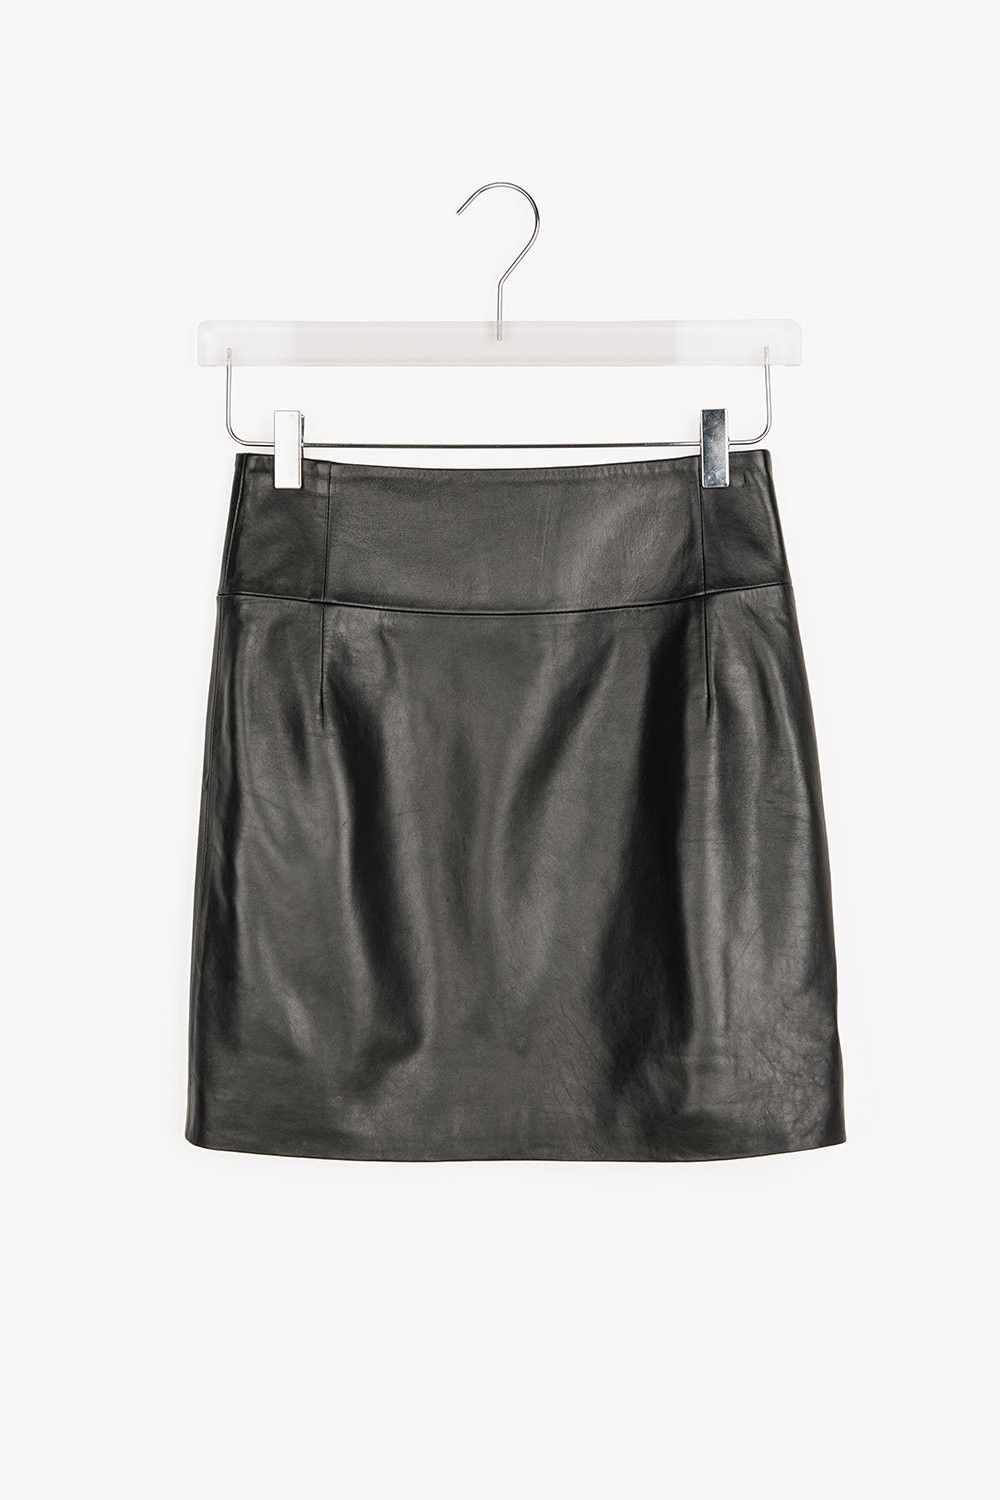 deb0821775 Genuine People High Waist Leather Mini Skirt - XS | Products in 2018 ...